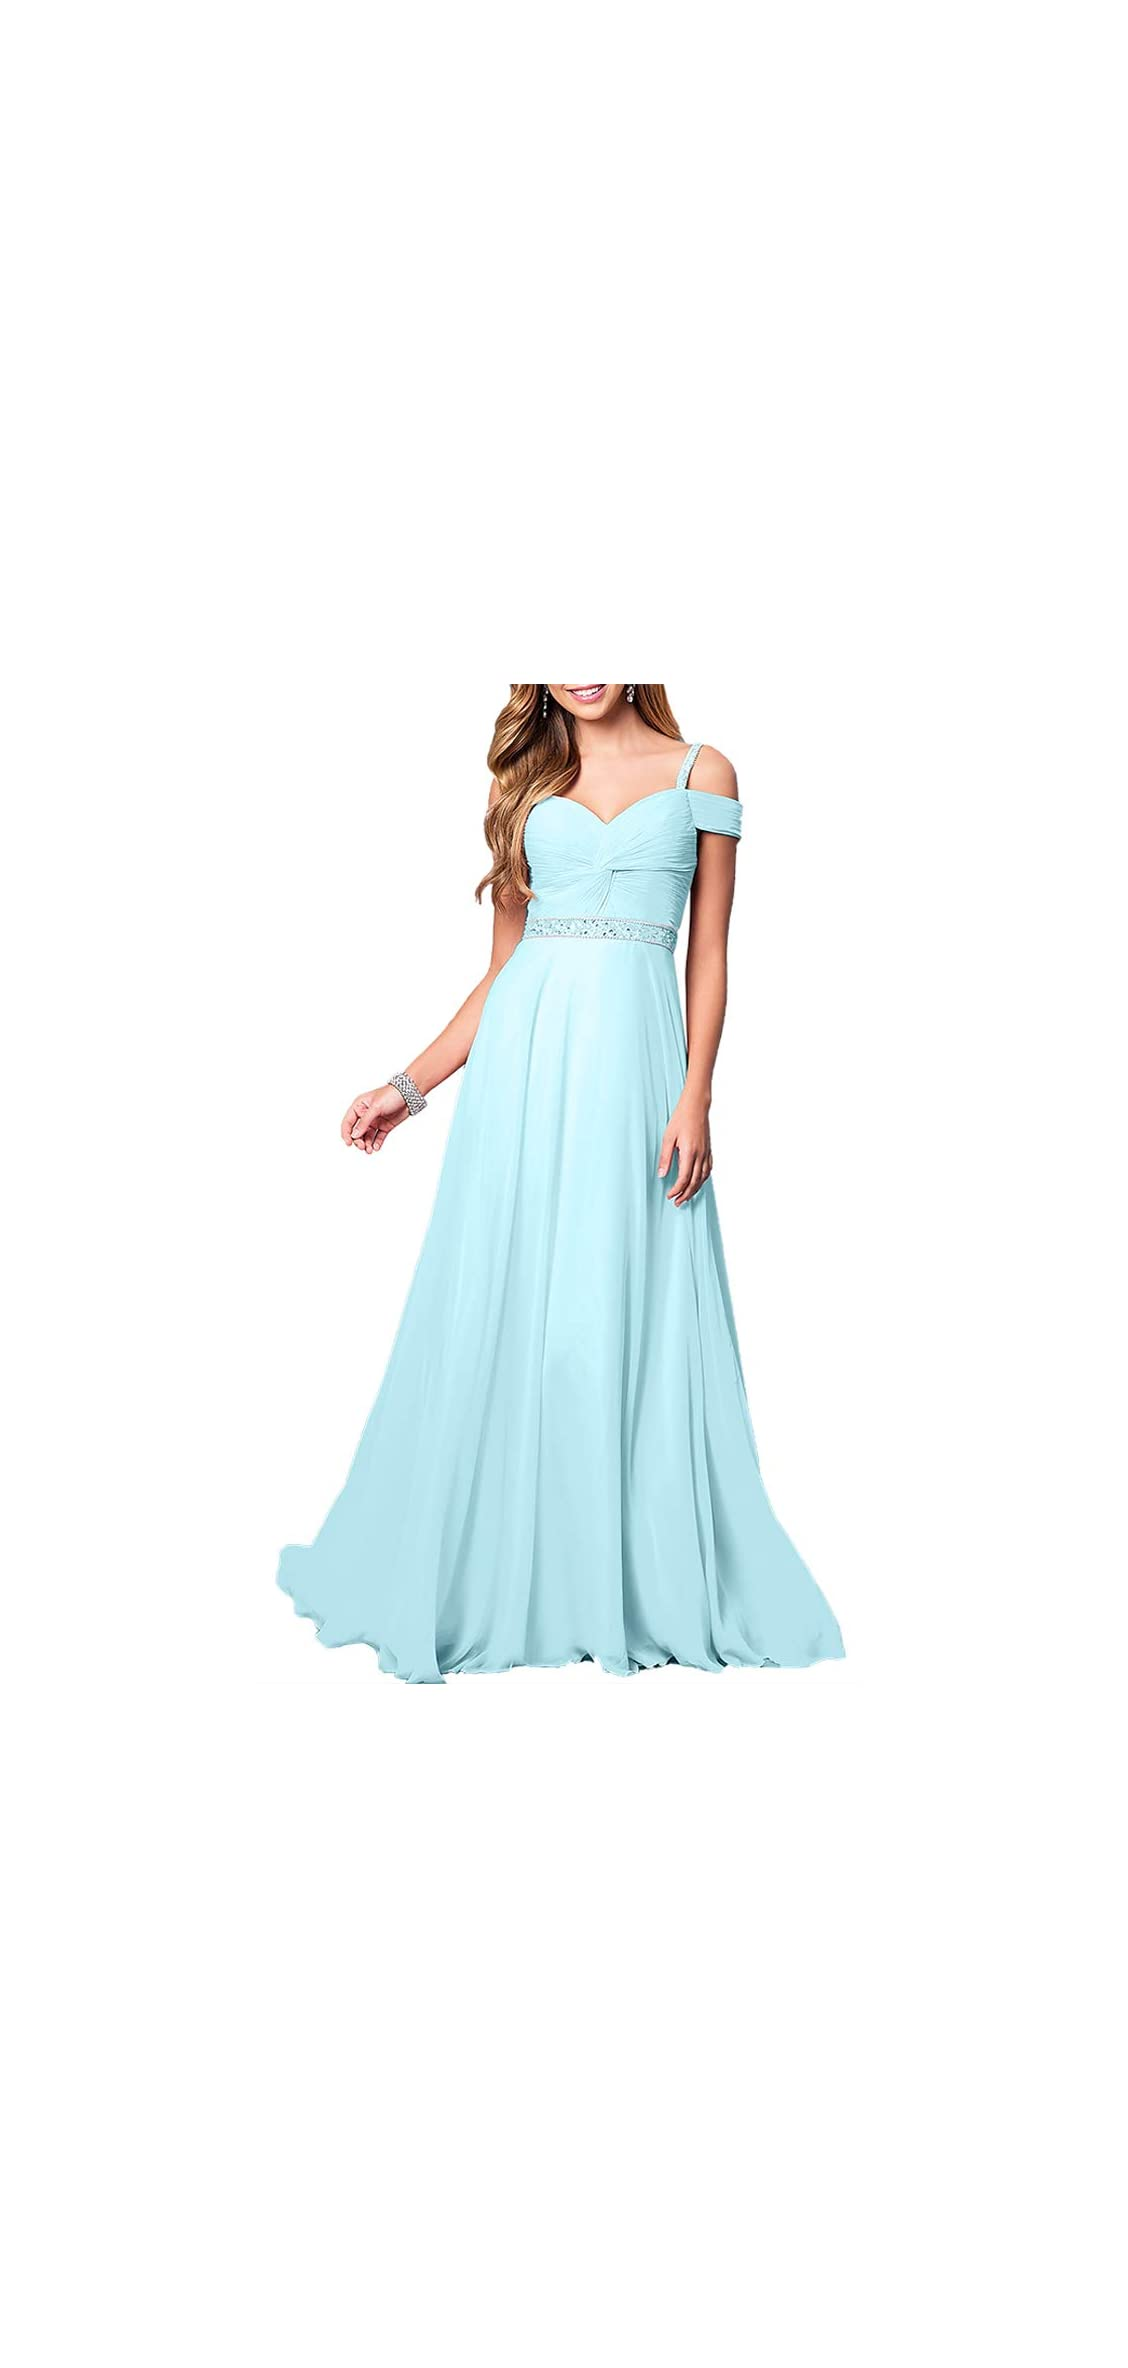 New Lace Long Chiffon Formal Evening Bridesmaid Dresses